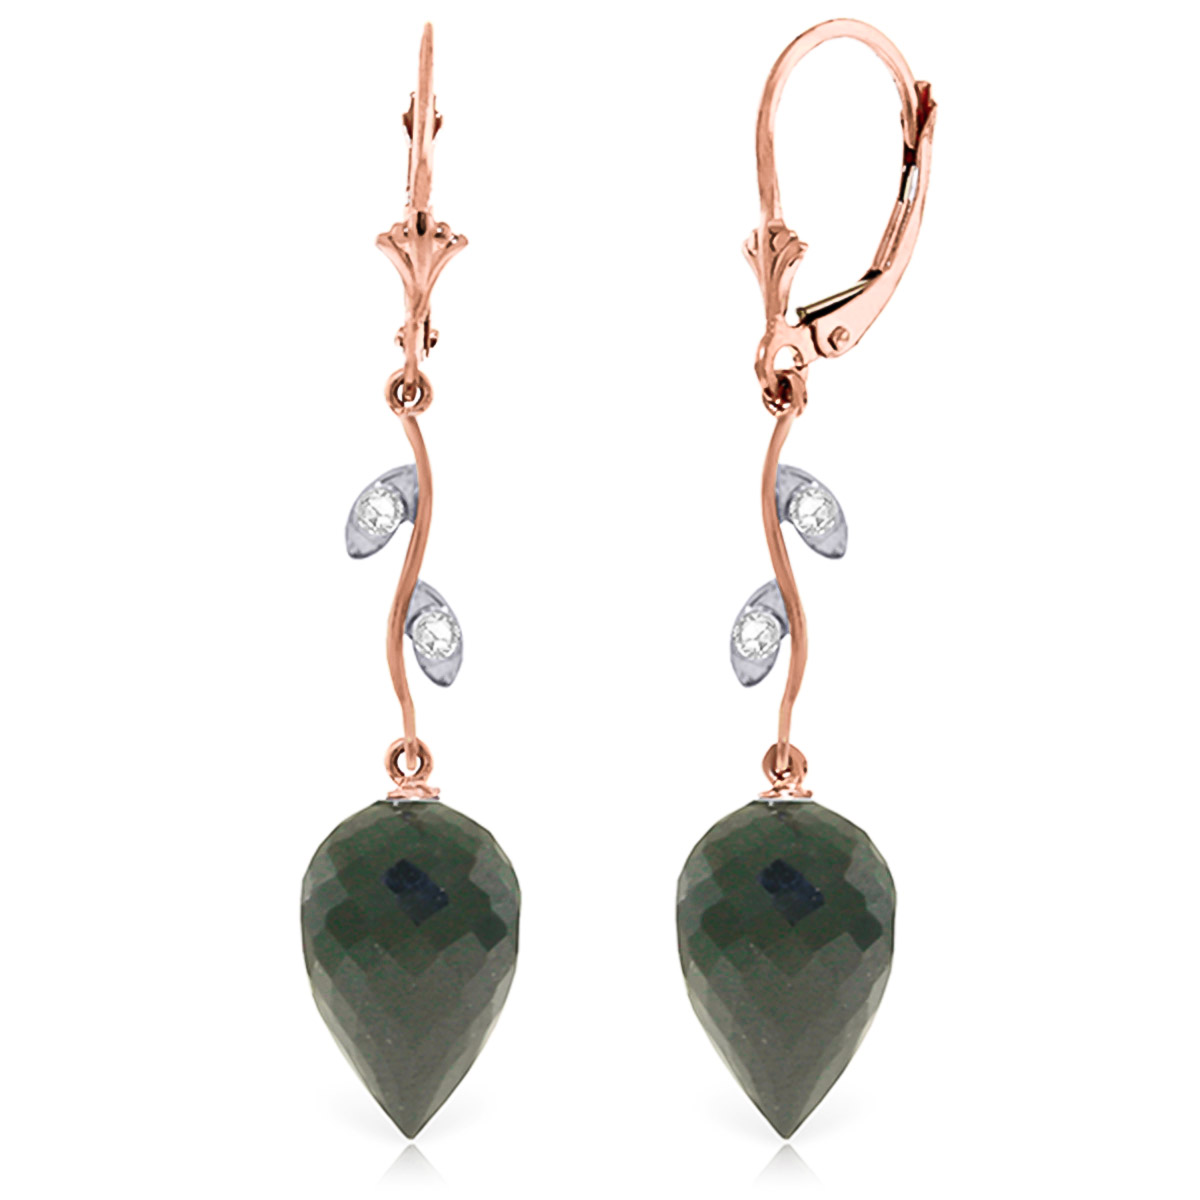 Black Spinel Drop Earrings 24.52 ctw in 9ct Rose Gold